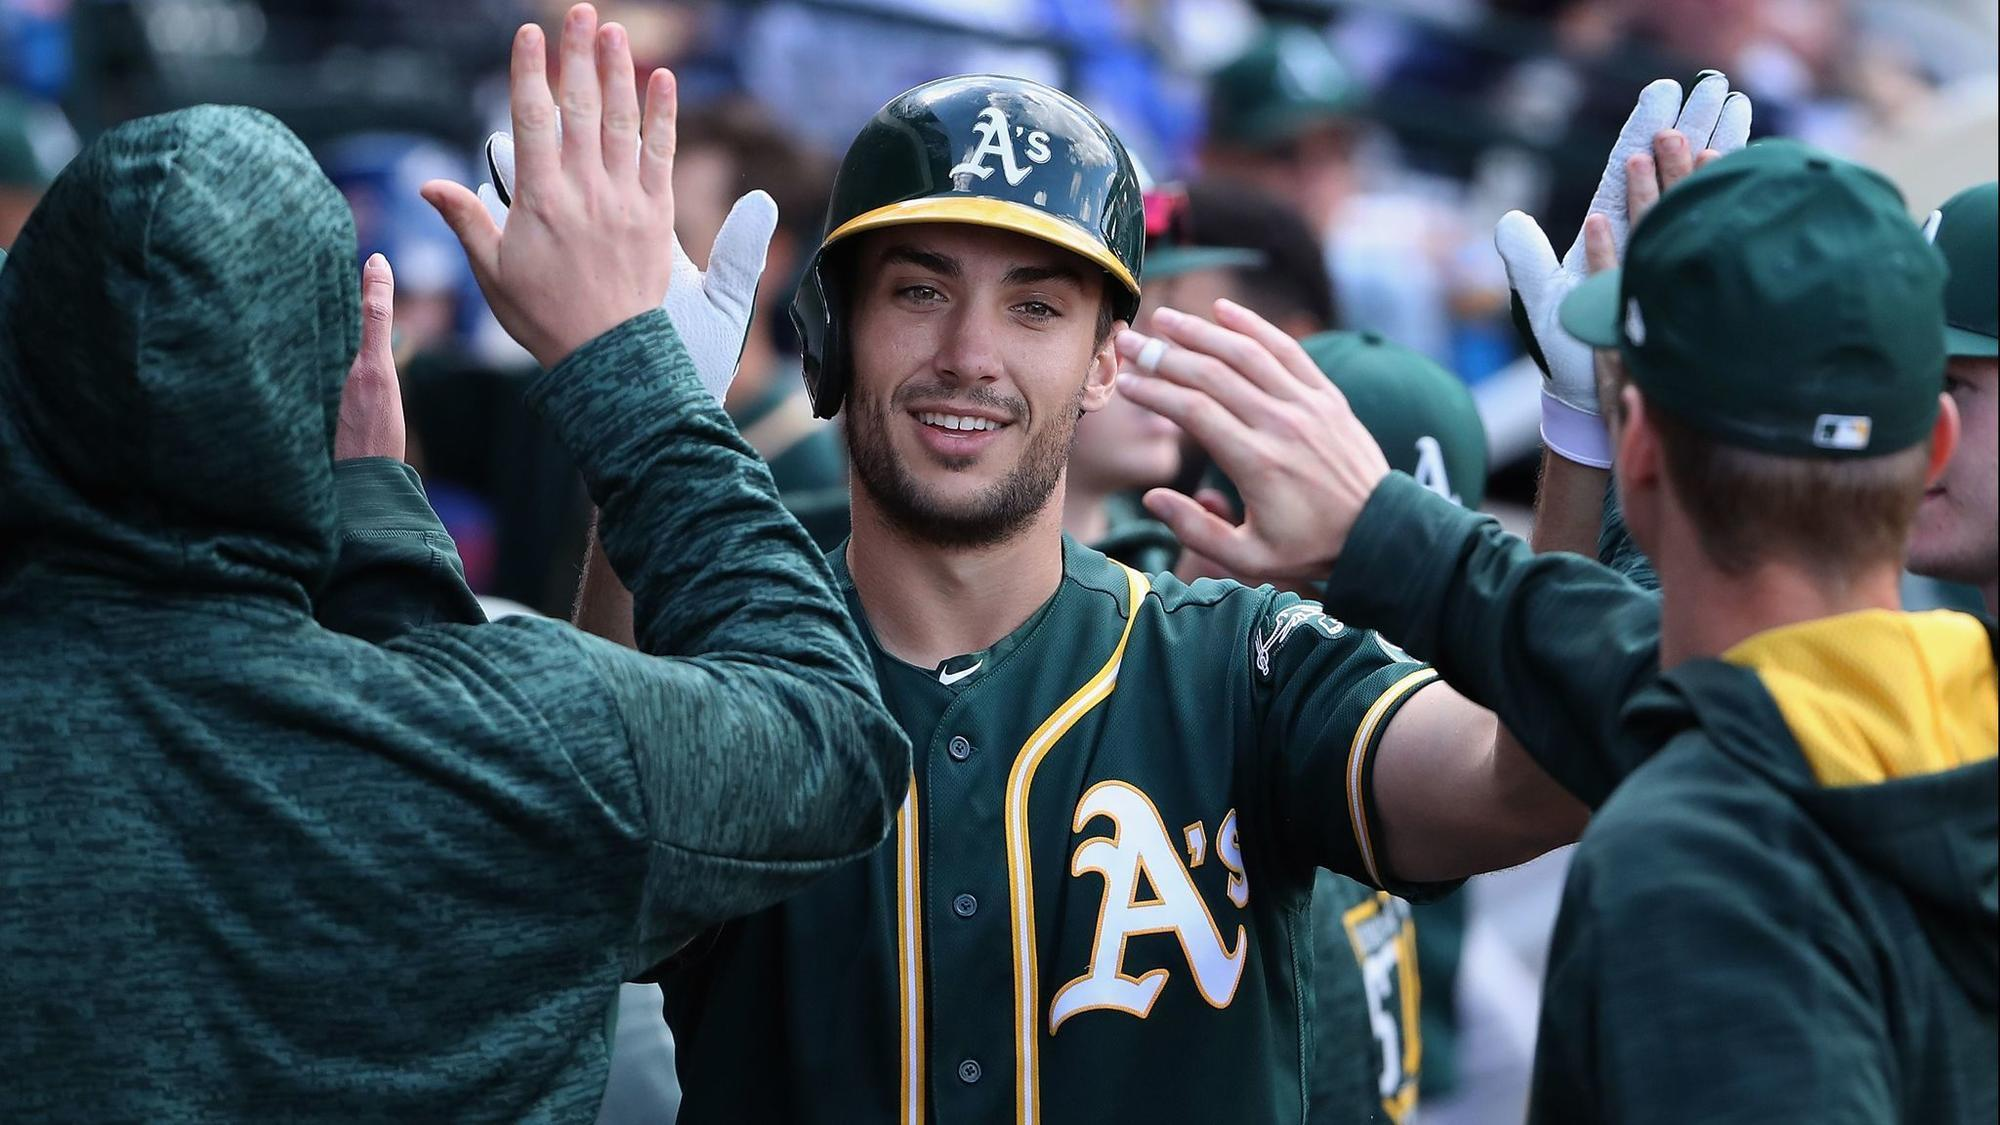 Sd-sp-mlb-progress-report-oakland-athletics-20180317